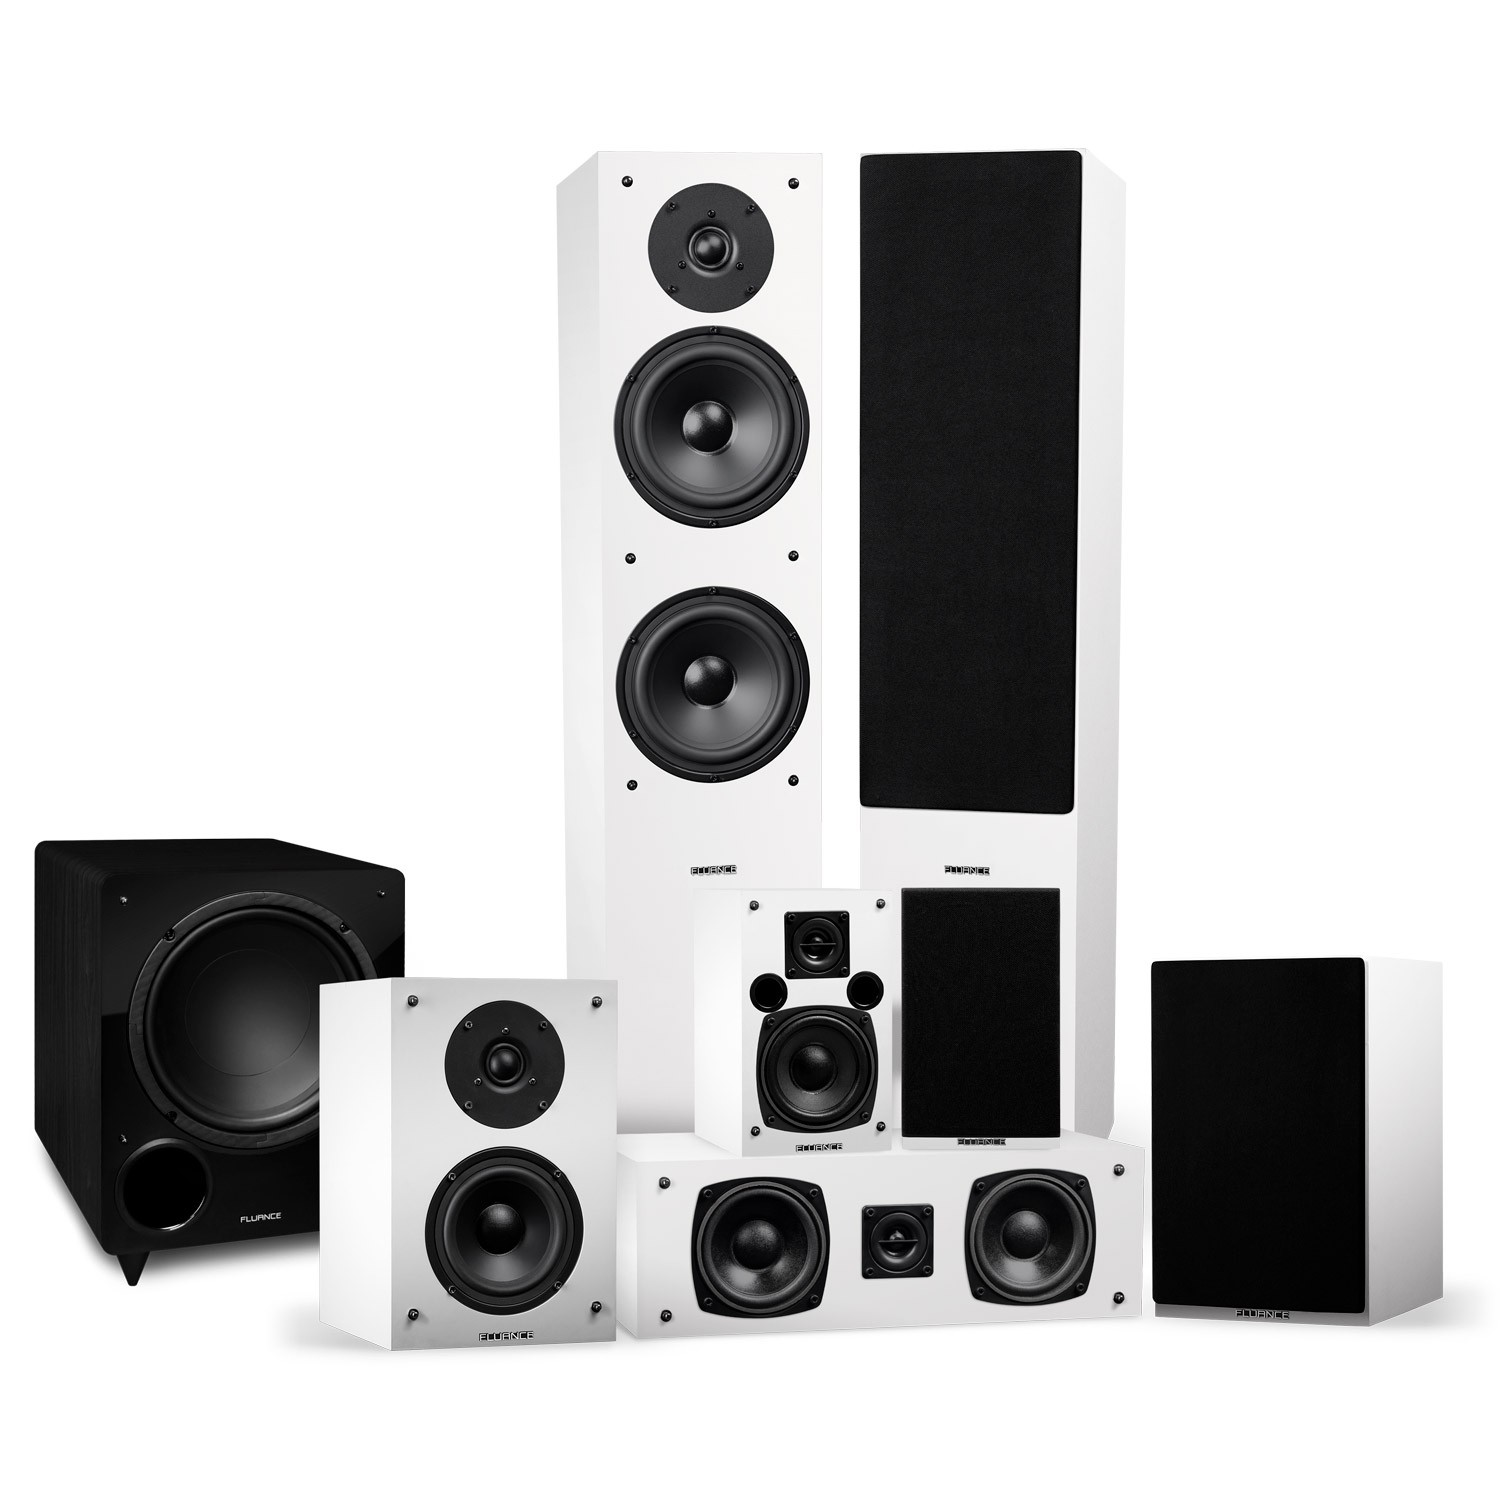 Elite Series Surround Sound Home Theater 7.1 Channel Speaker System - White - Main